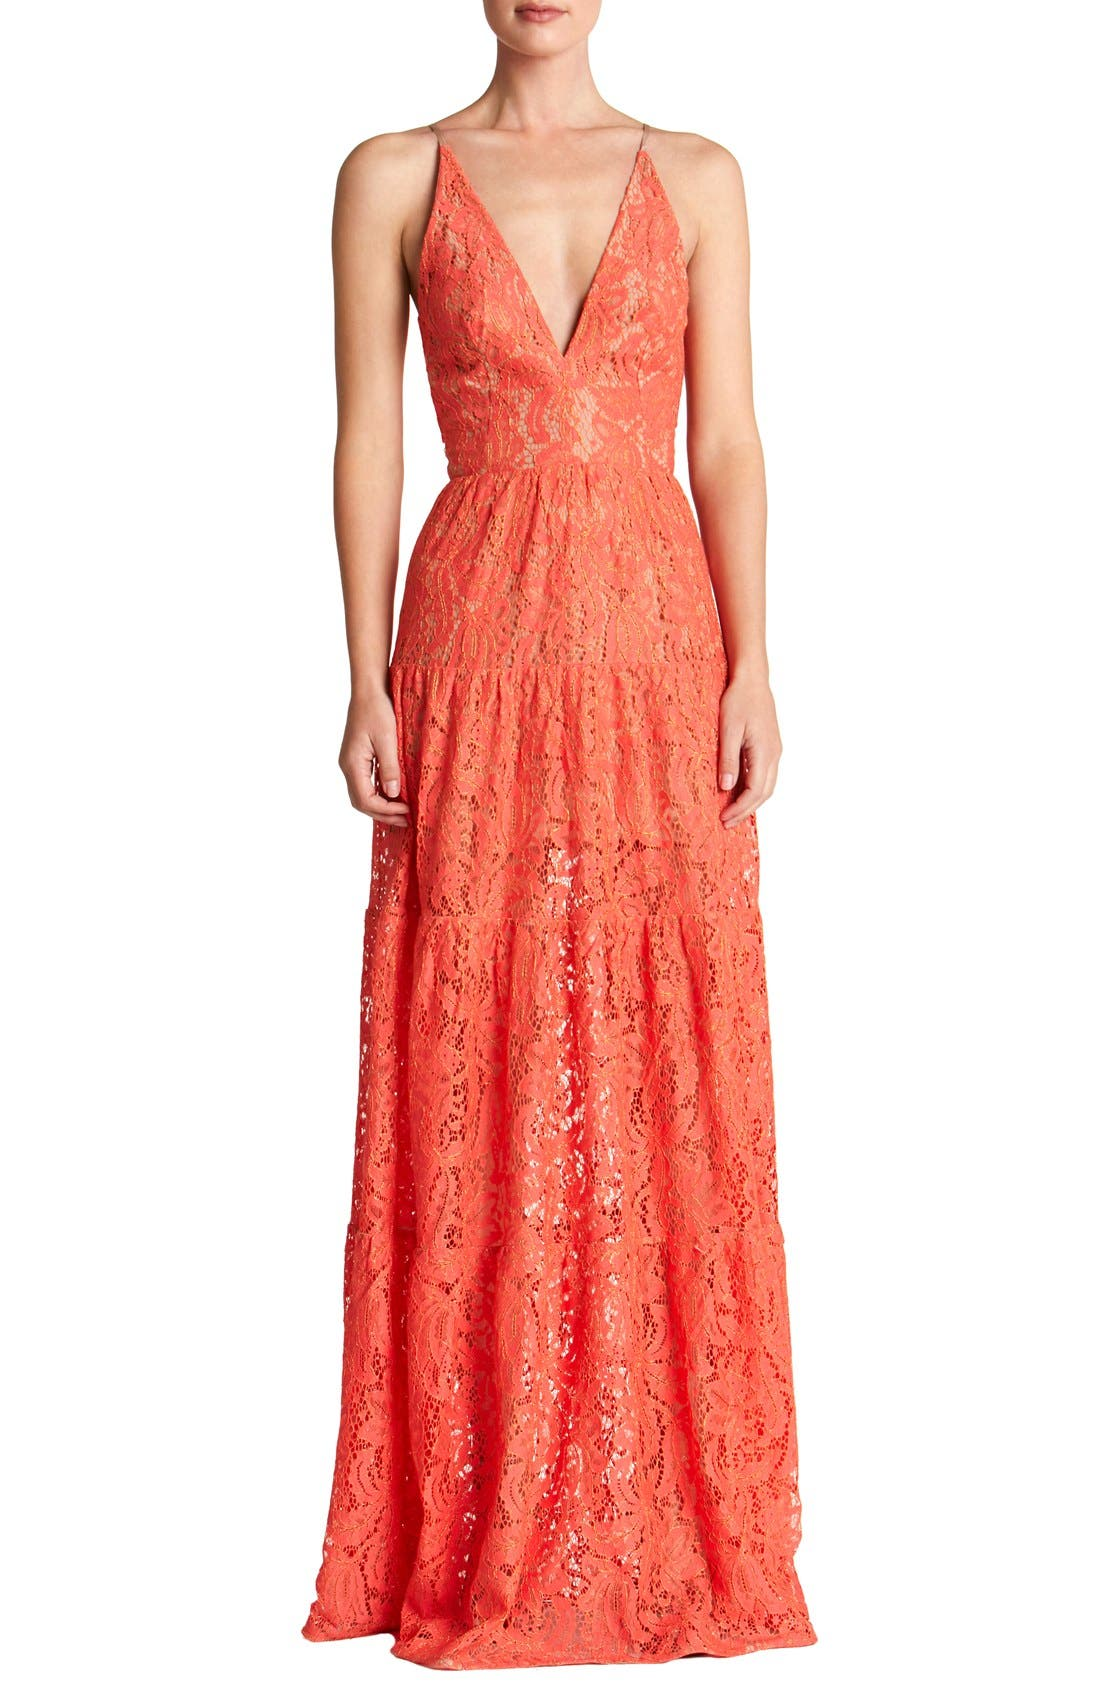 Alternate Image 1 Selected - Dress the Population Melina Lace Fit & Flare Maxi Dress